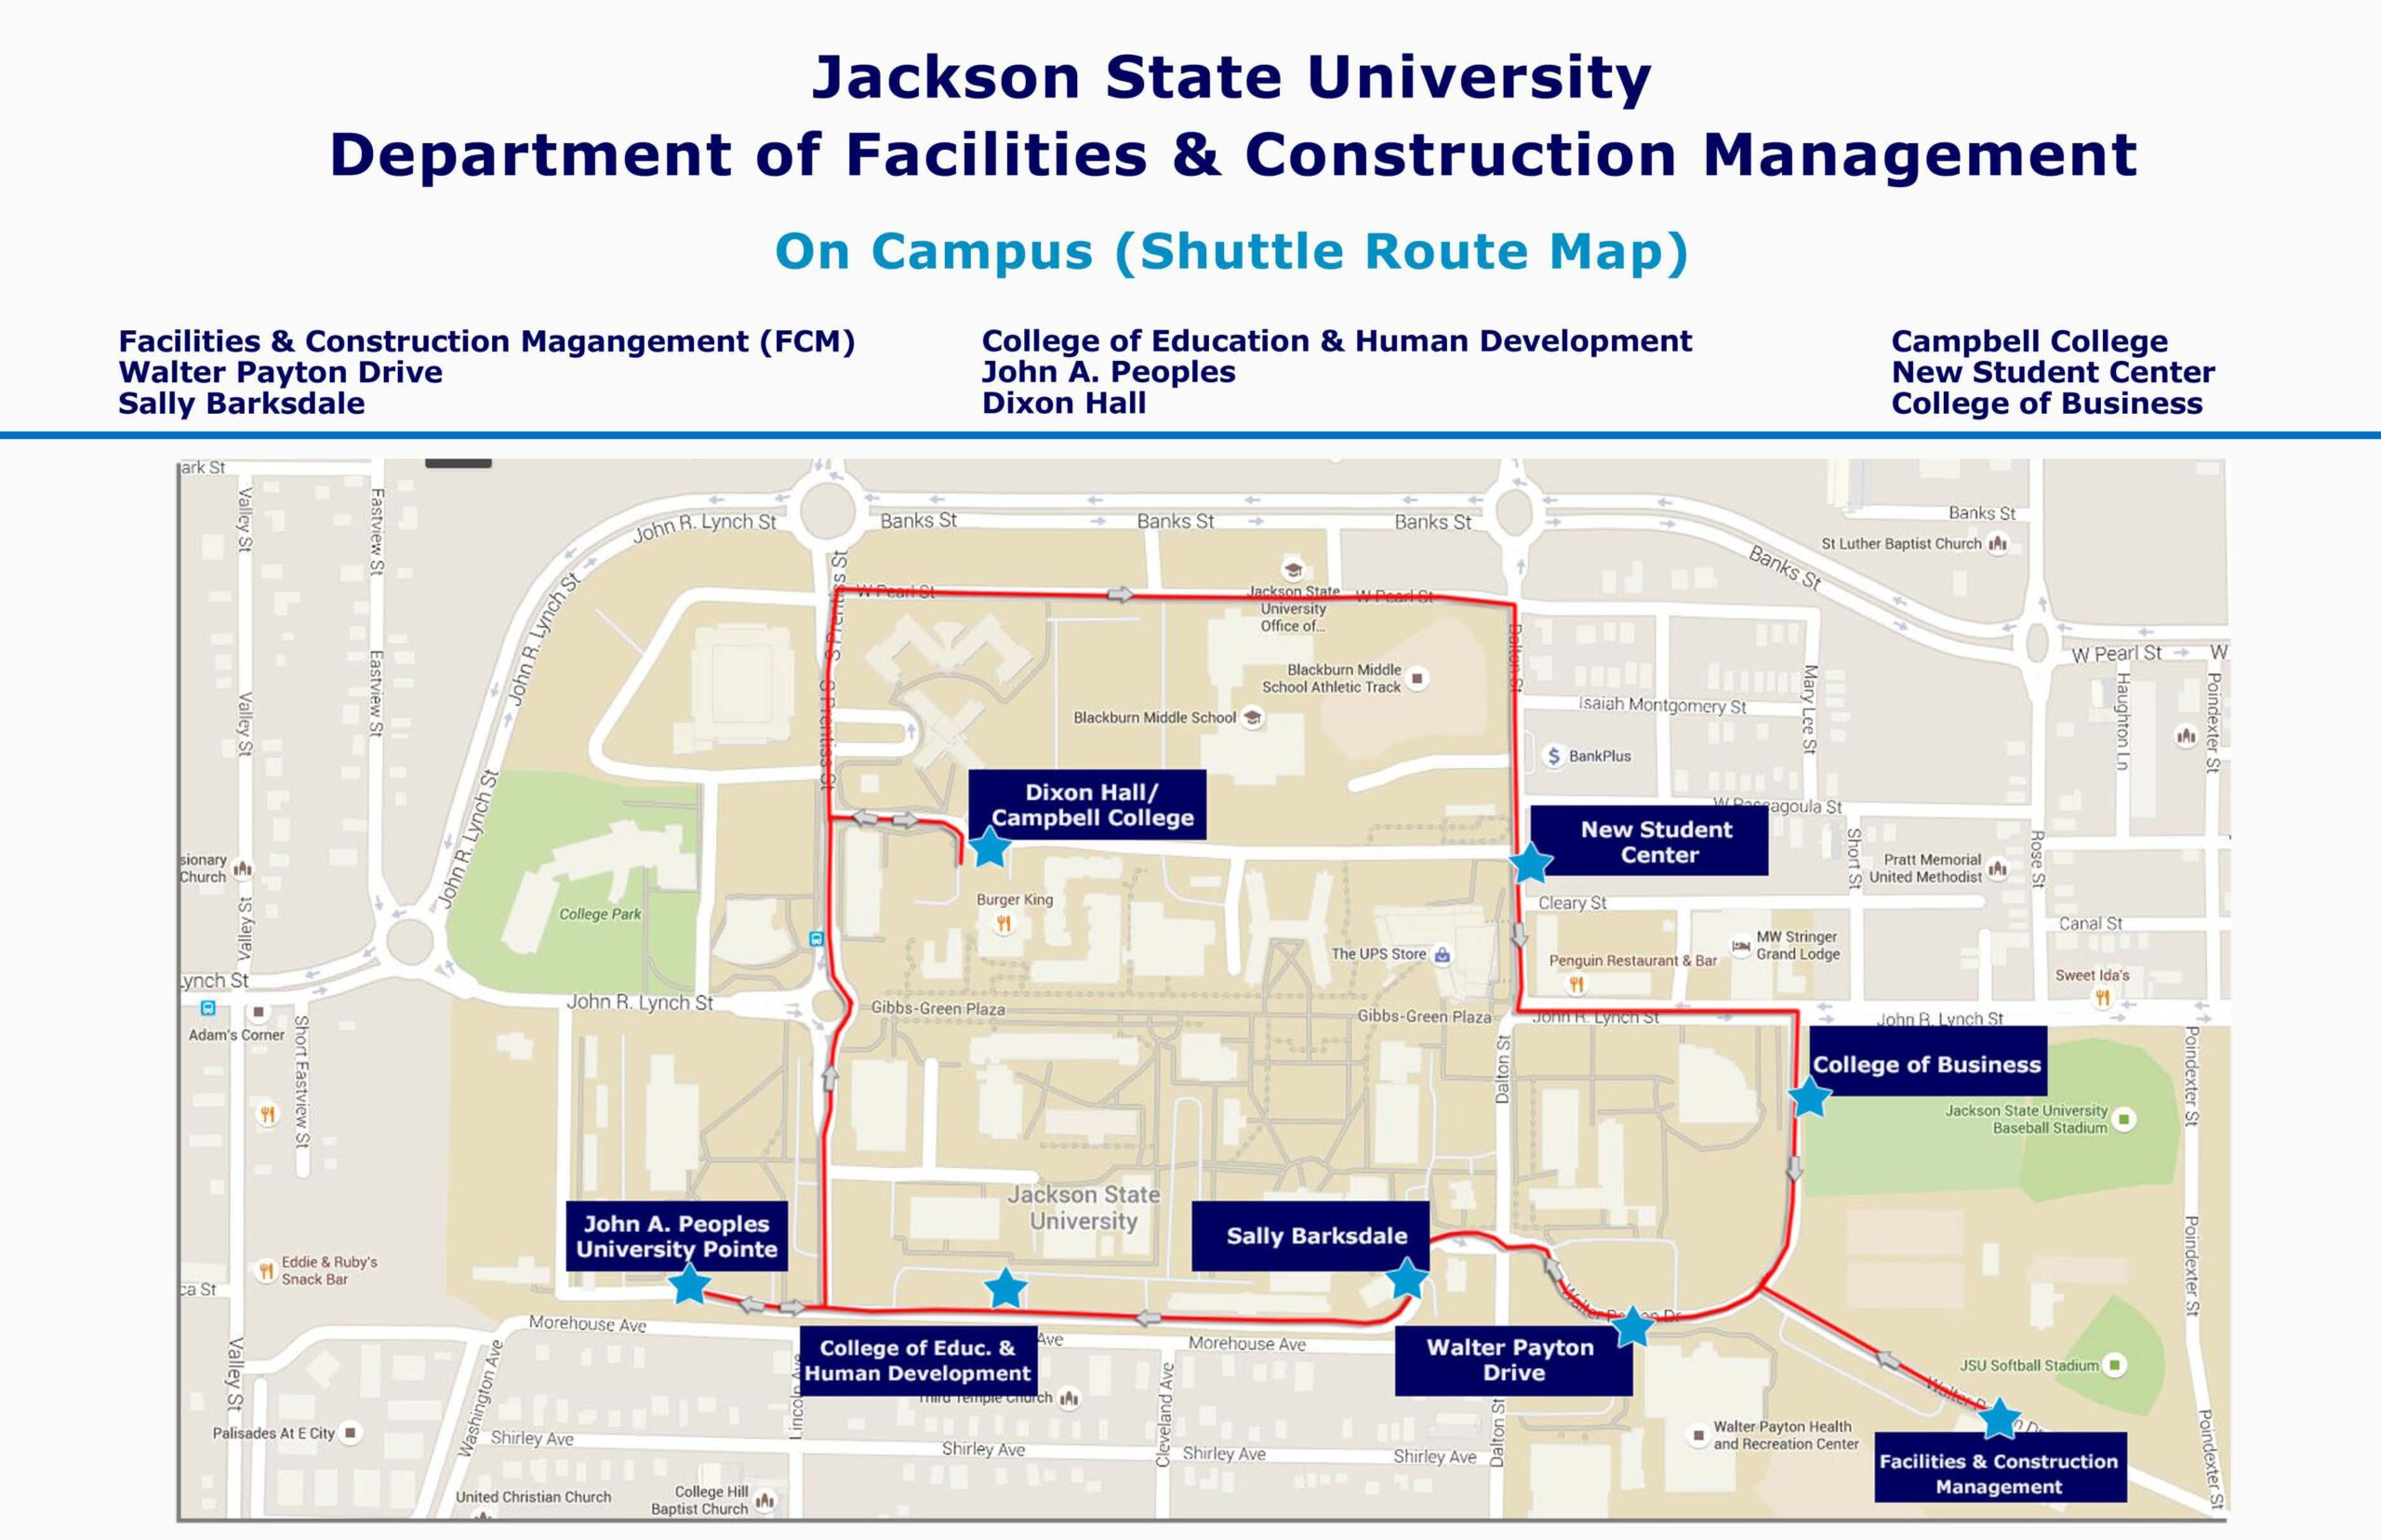 jackson state university campus map Jsu Main Campus Shuttle Schedule Department Of Facilities And jackson state university campus map